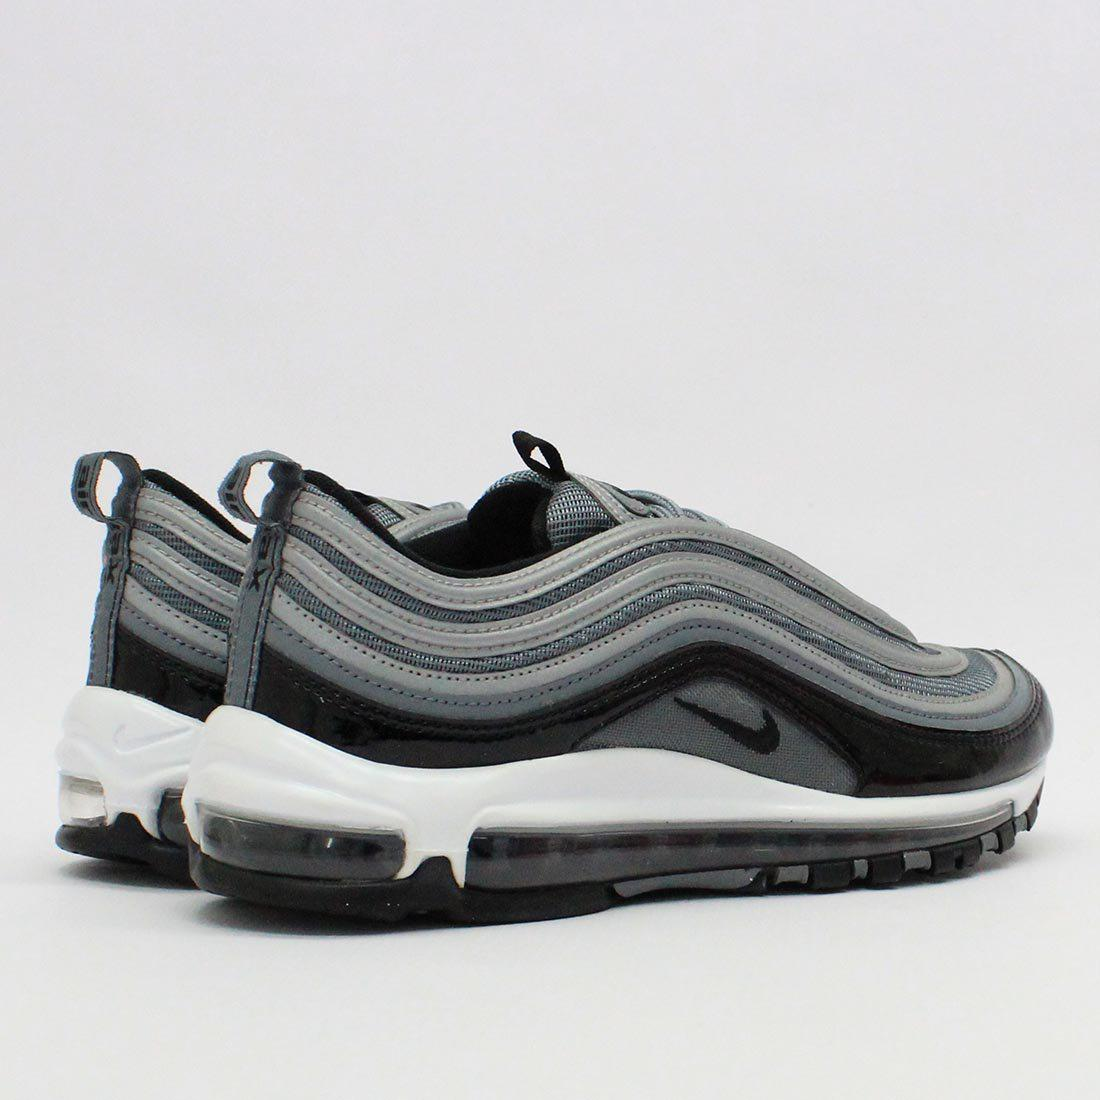 outlet store 5b8f5 8a02a ... shop lyst nike trainers nike air max 97 cool grey 921826 010 in gray  c1f3c e2c16